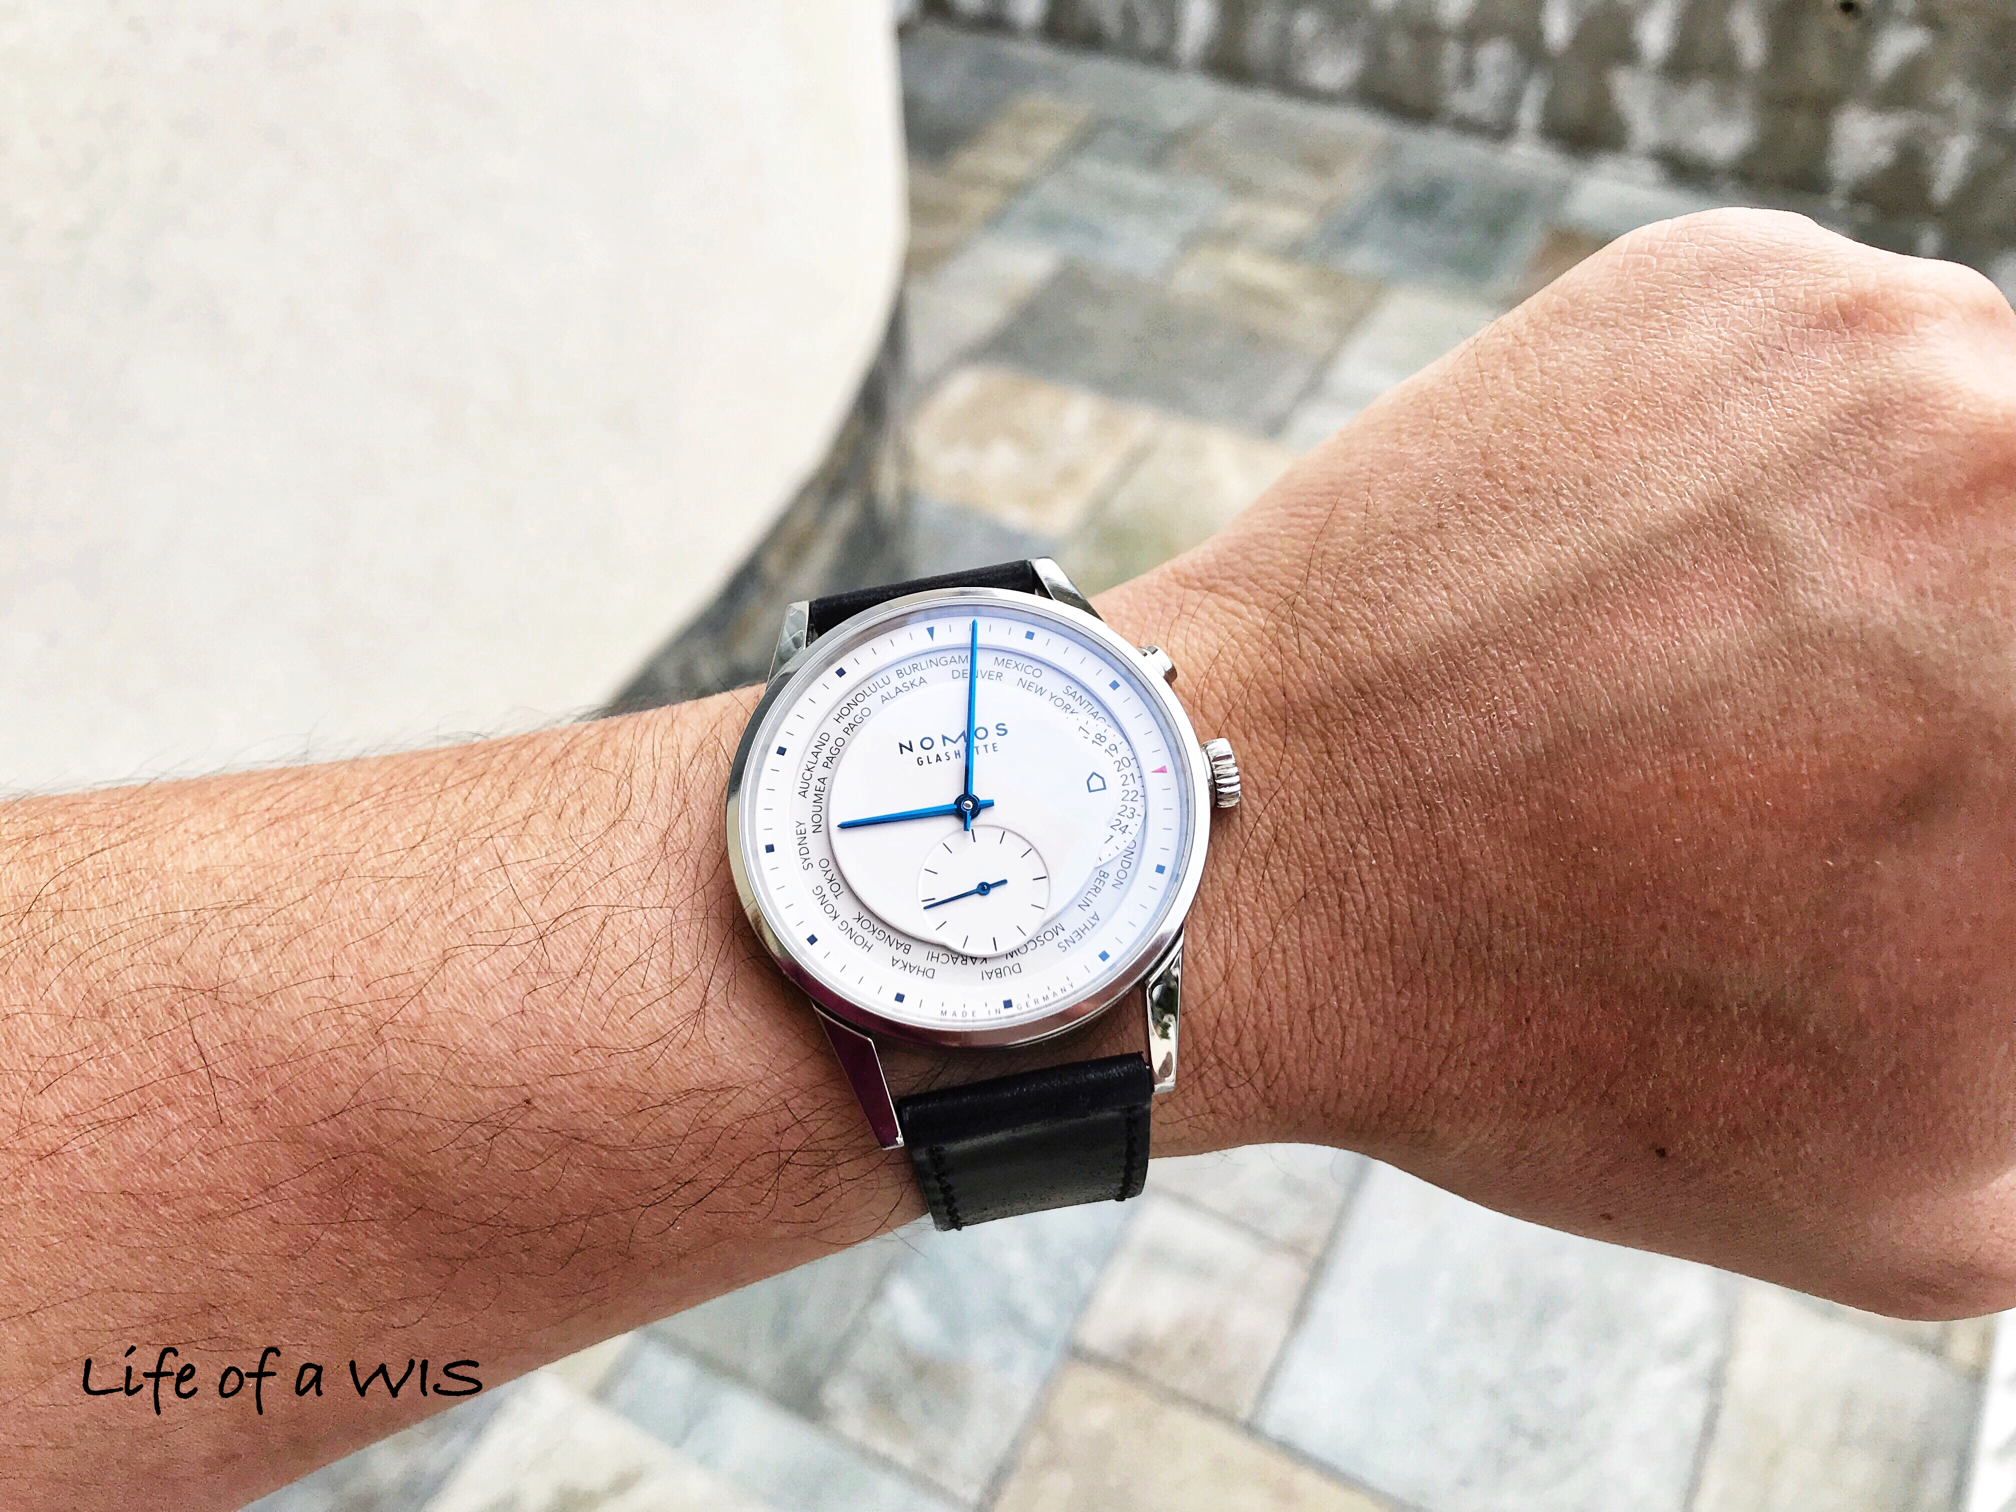 Pure white lacquer dial and blue hands, now that is a winning combination.